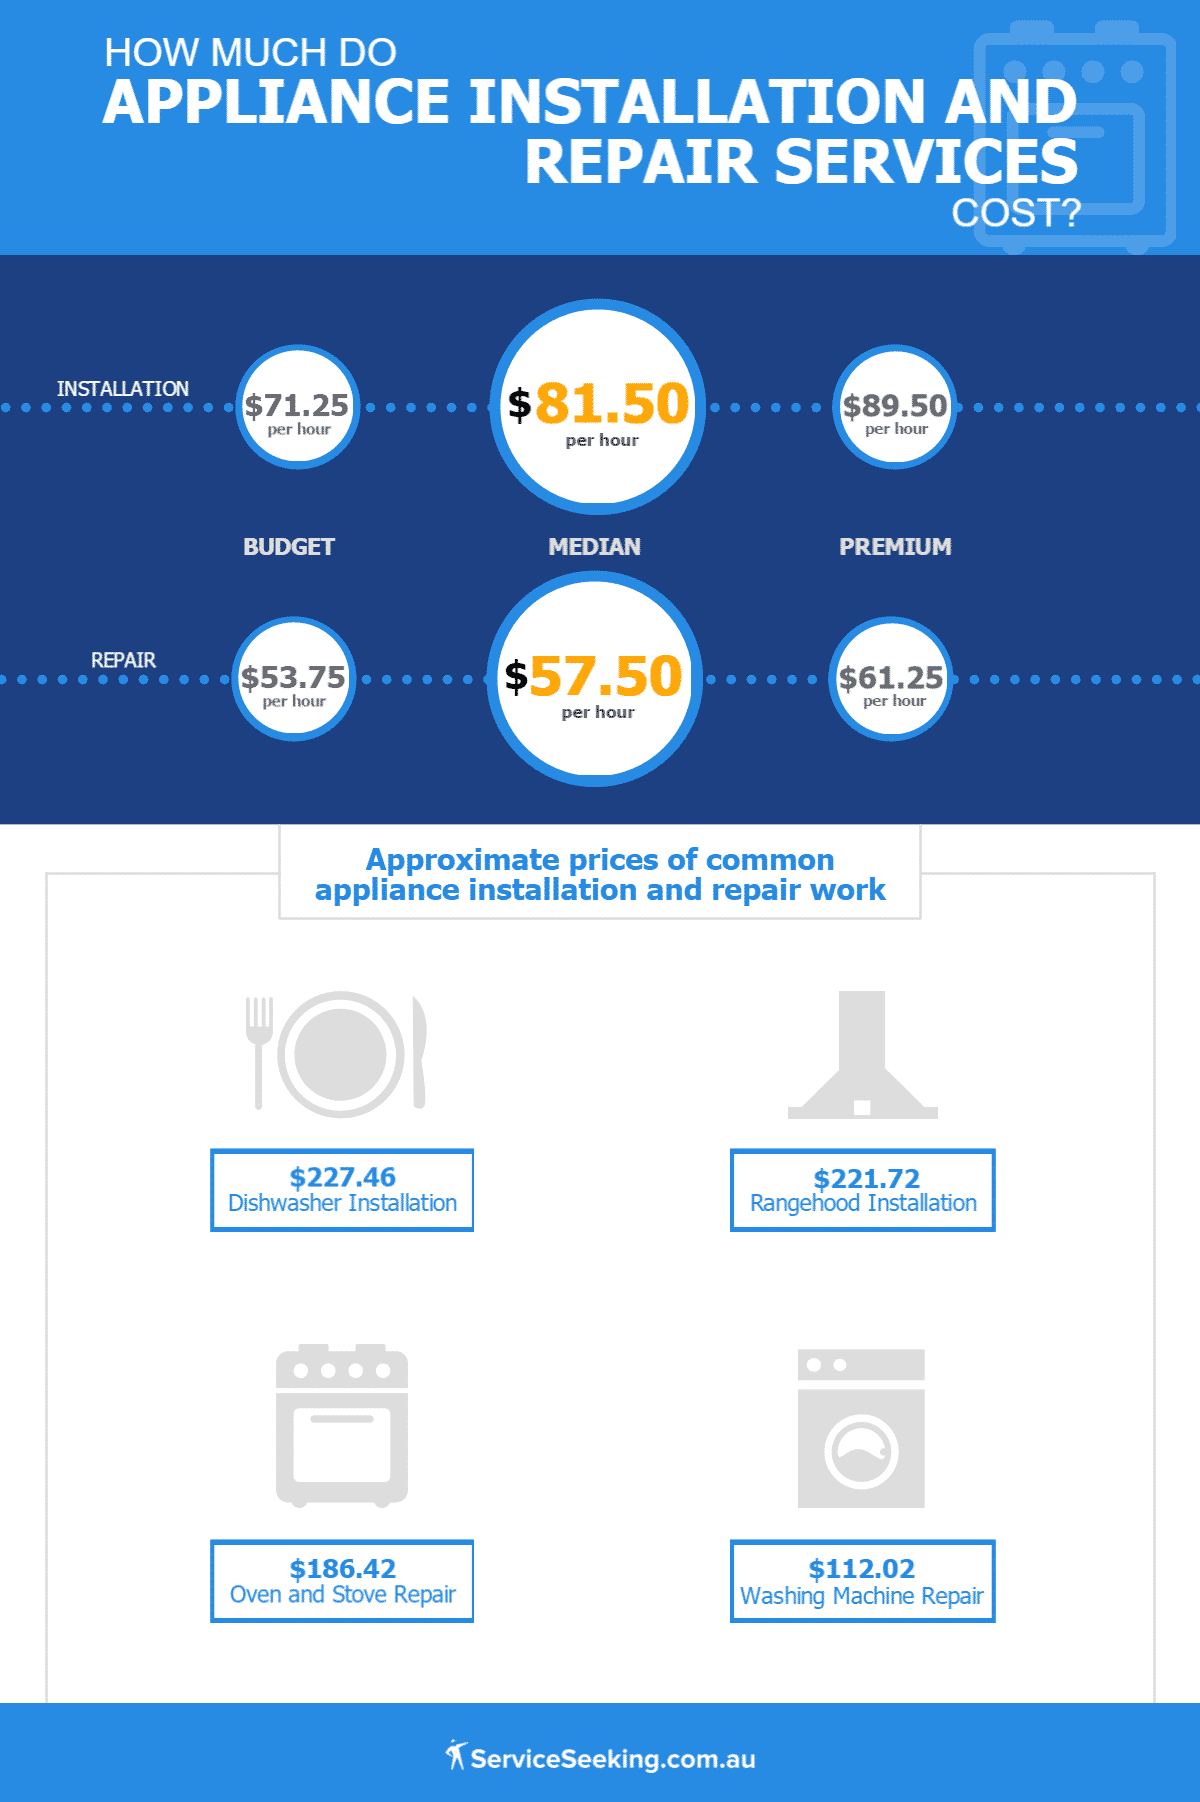 Cost of appliance installation